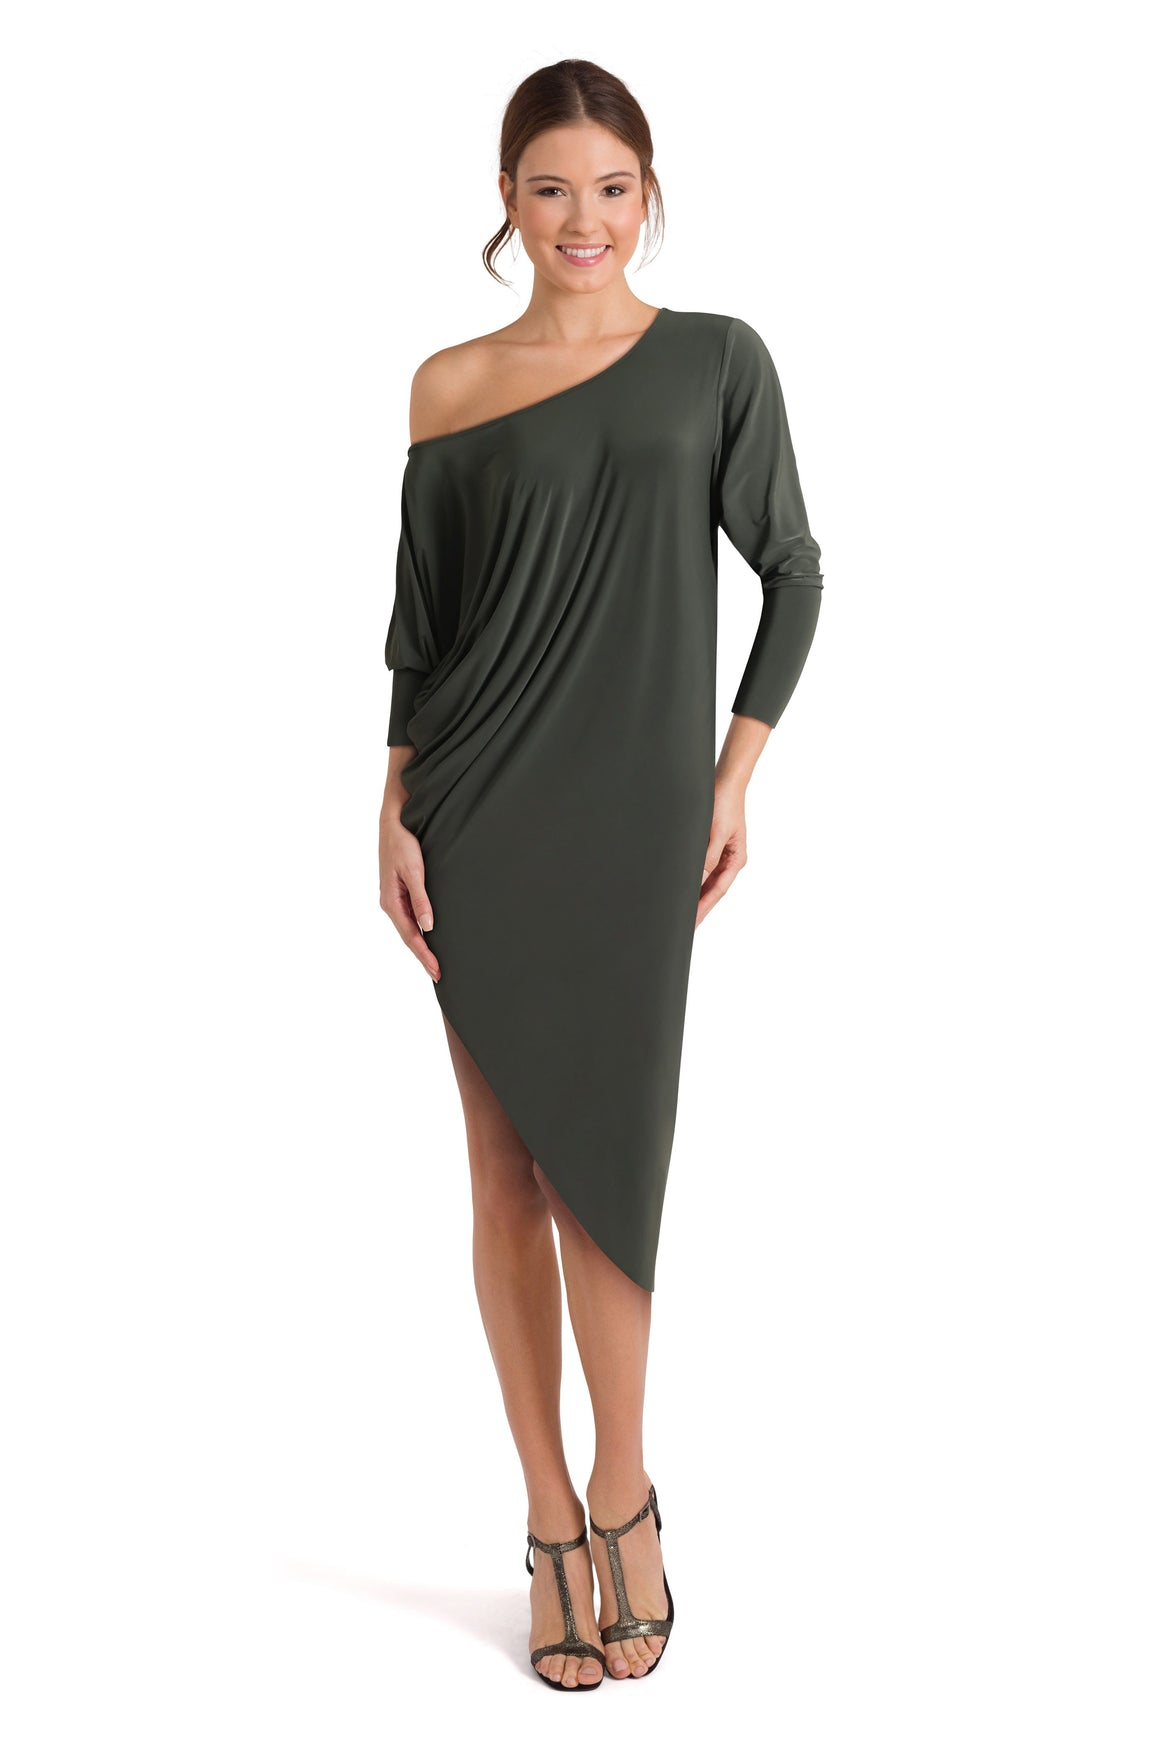 Oxford drape dress - Petriiski